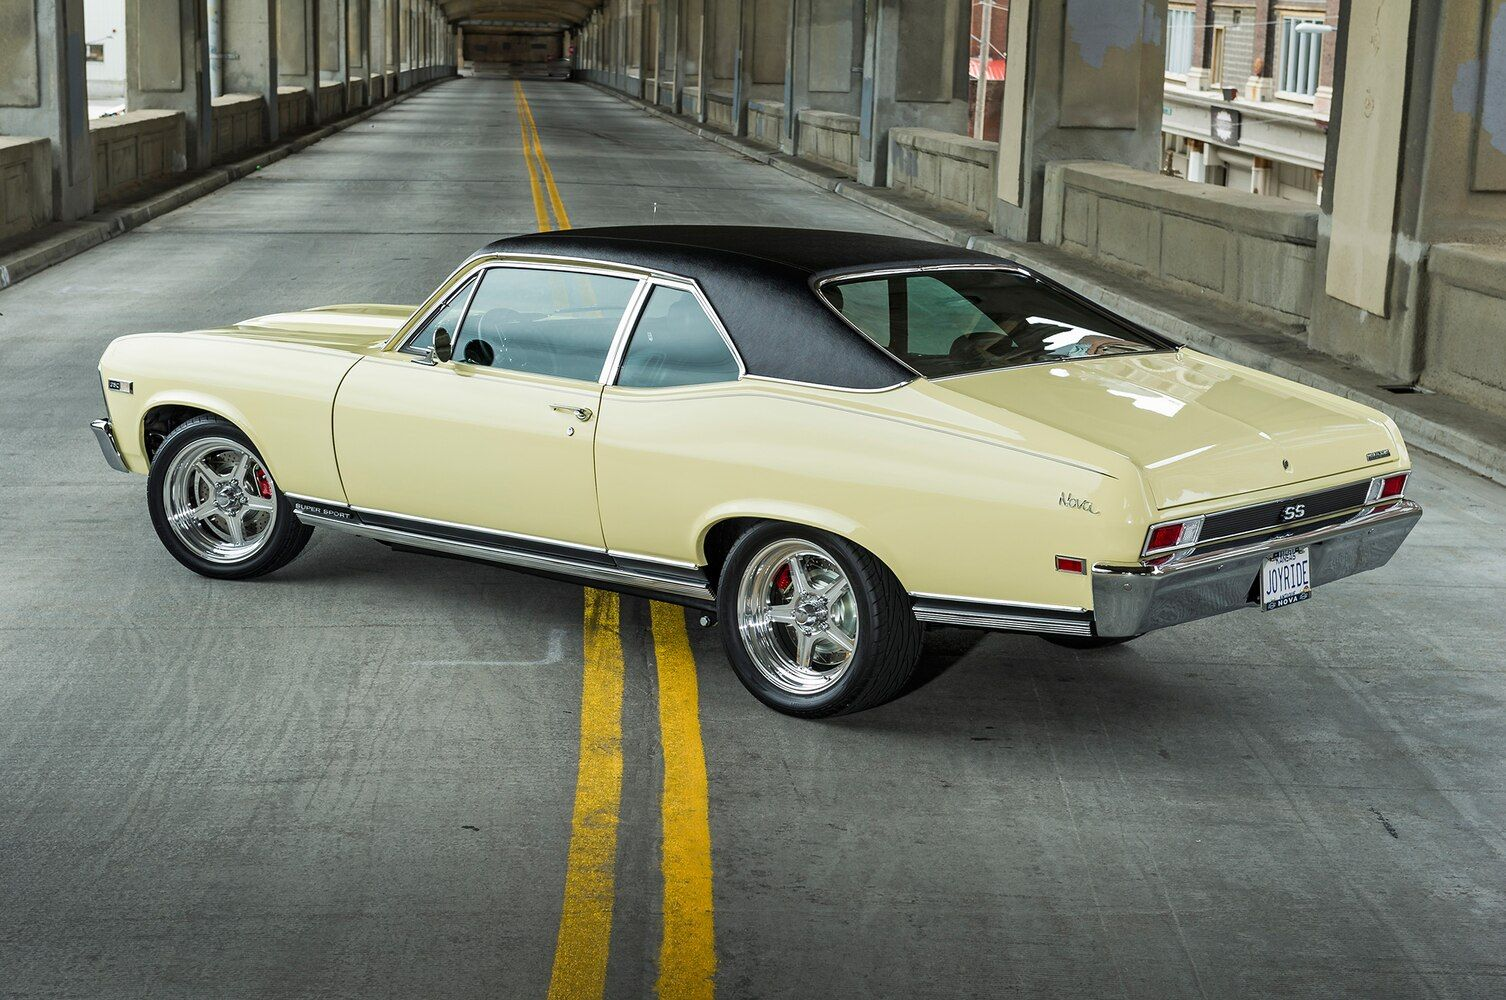 There is More Than Meets the Eye With This Immaculate 1968 Nova